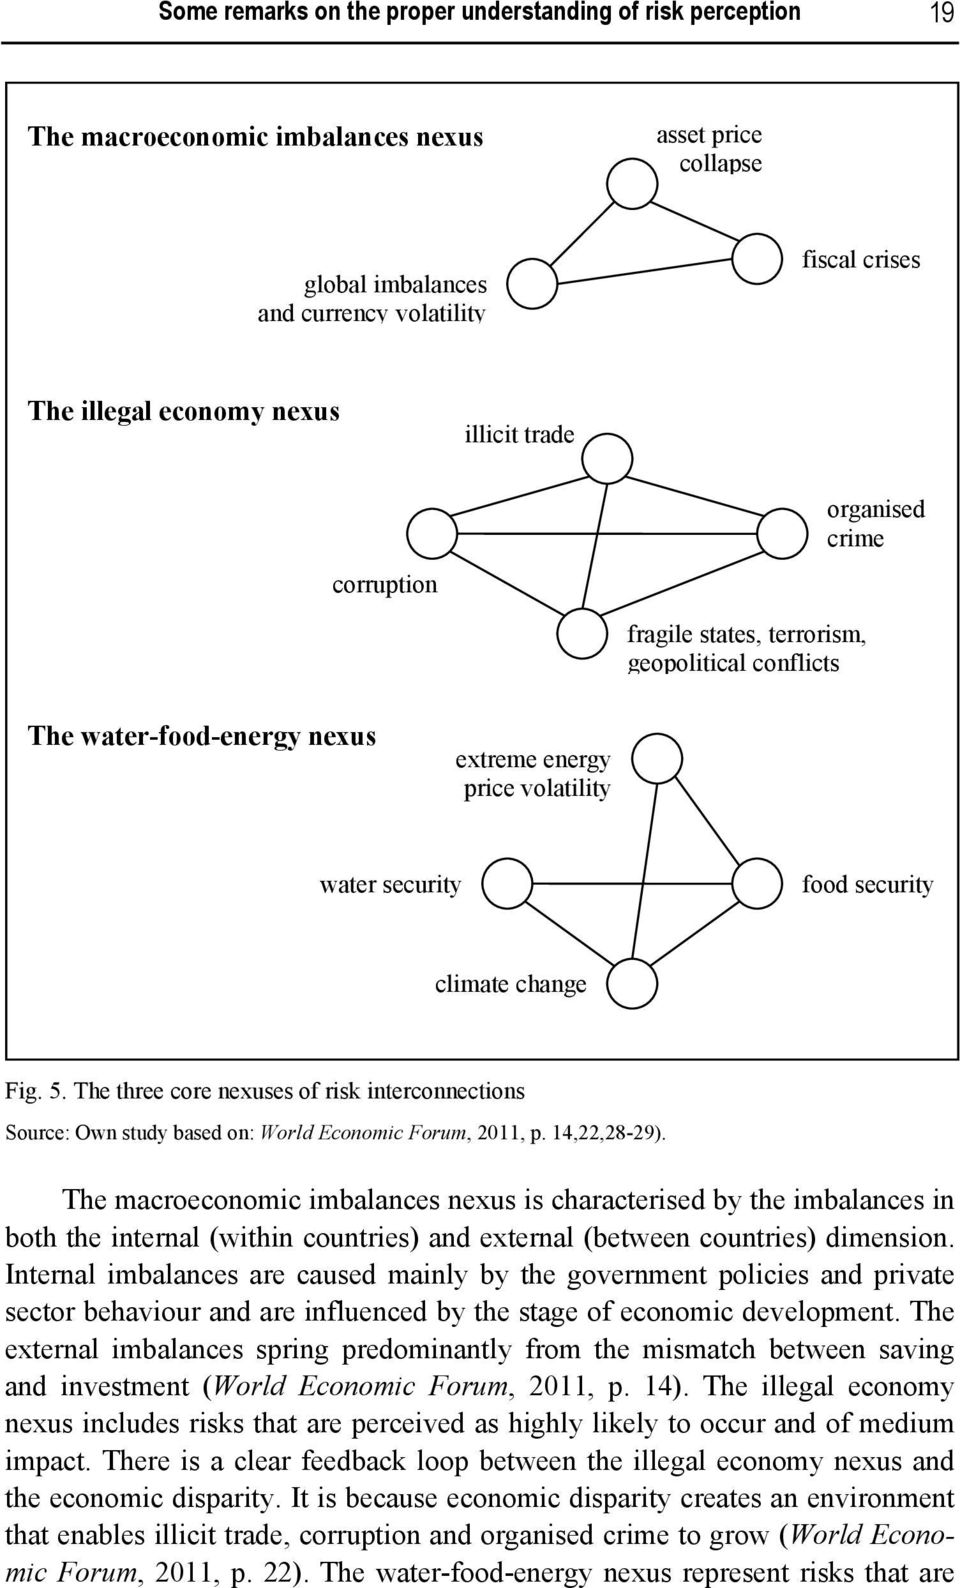 change Fig. 5. The three core nexuses of risk interconnections Source: Own study based on: World Economic Forum, 2011, p. 14,22,28-29).